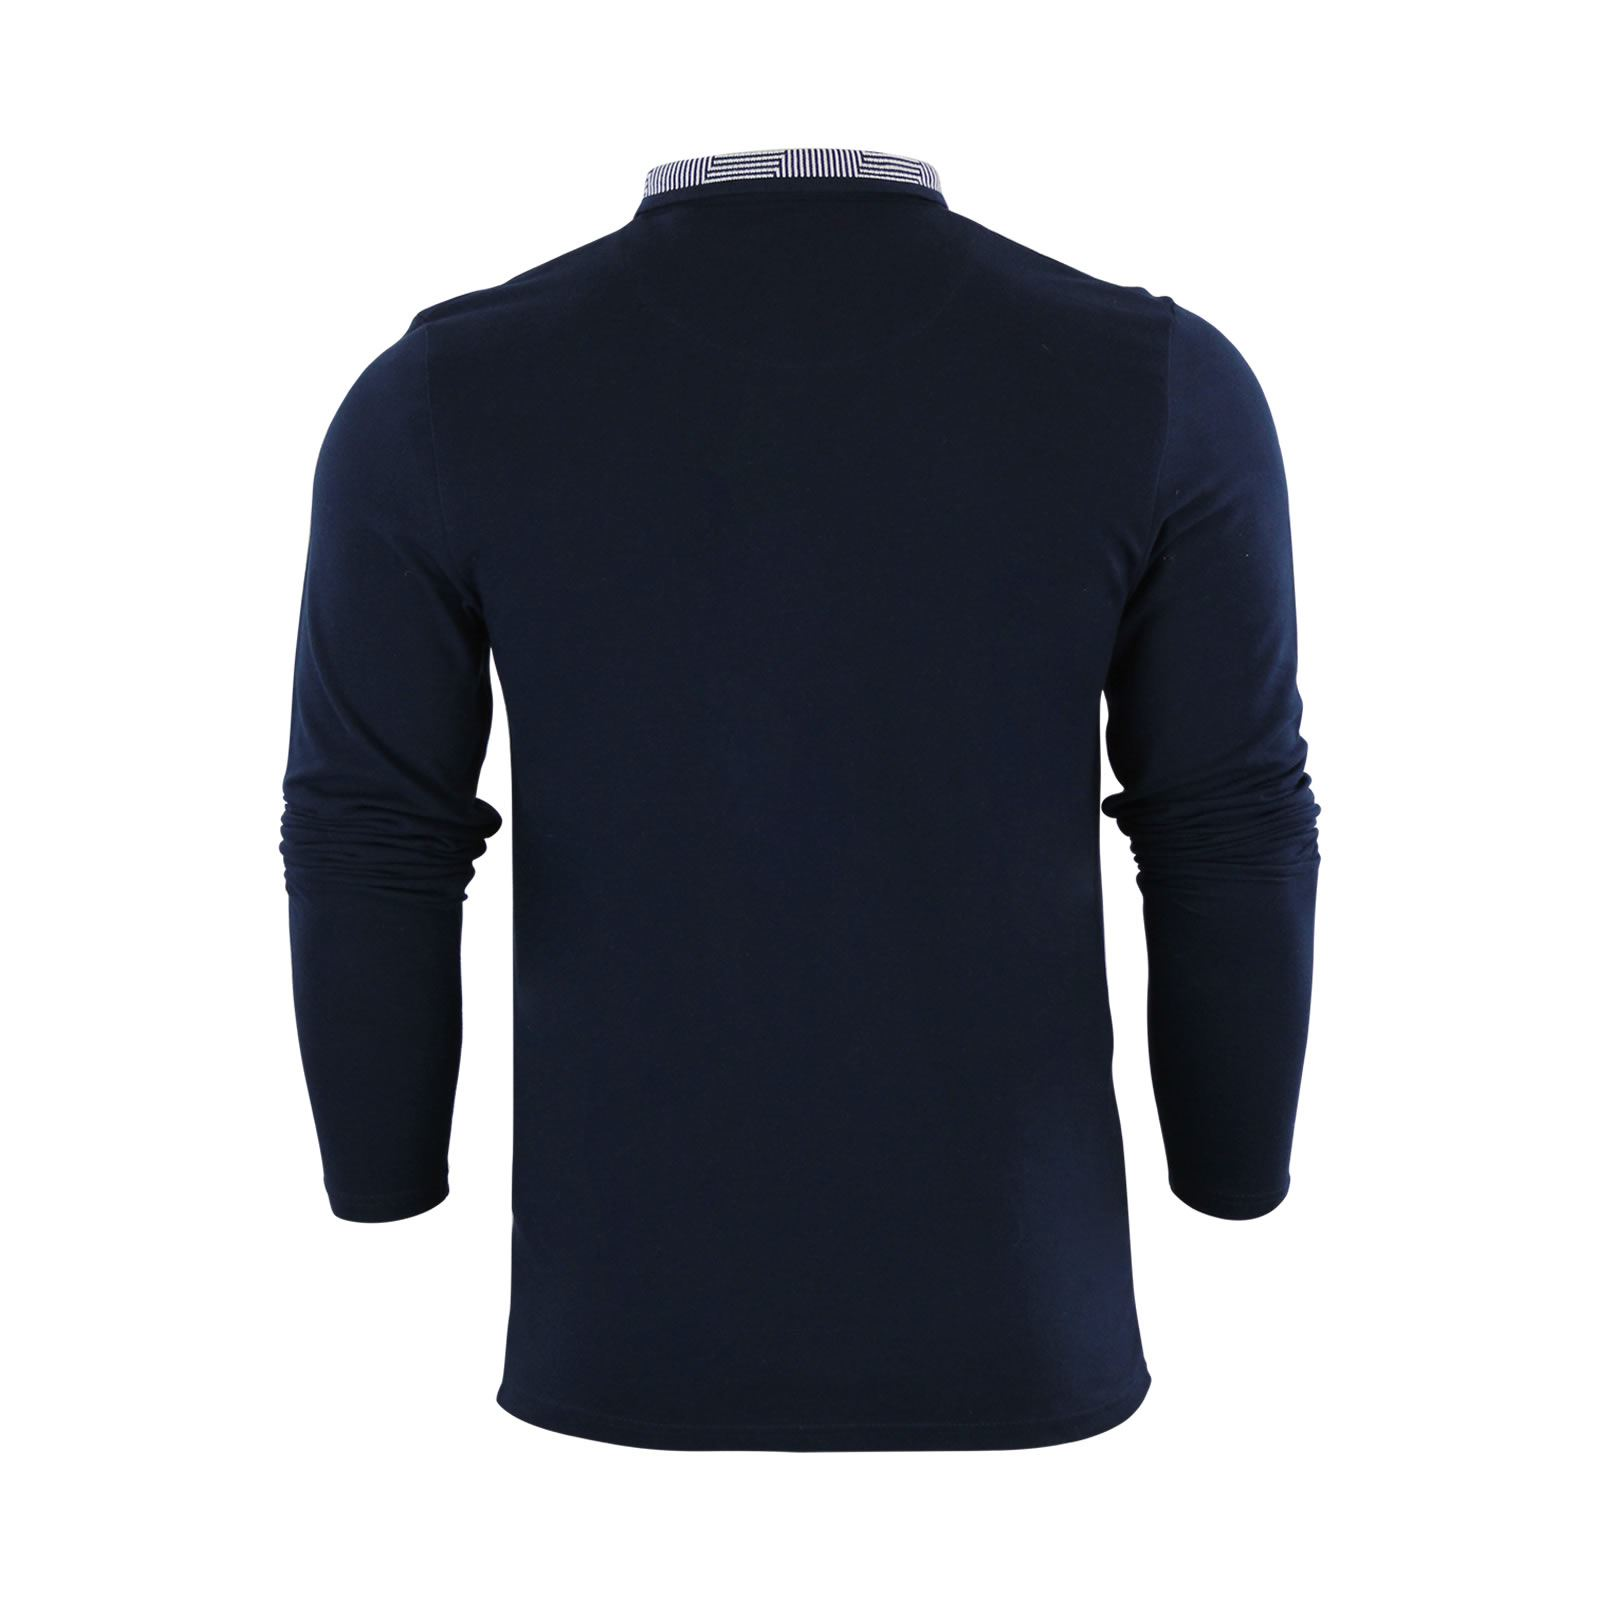 Mens-Polo-Shirt-Brave-Soul-Long-Sleeve-Collared-Top-In-Various-Styles thumbnail 24